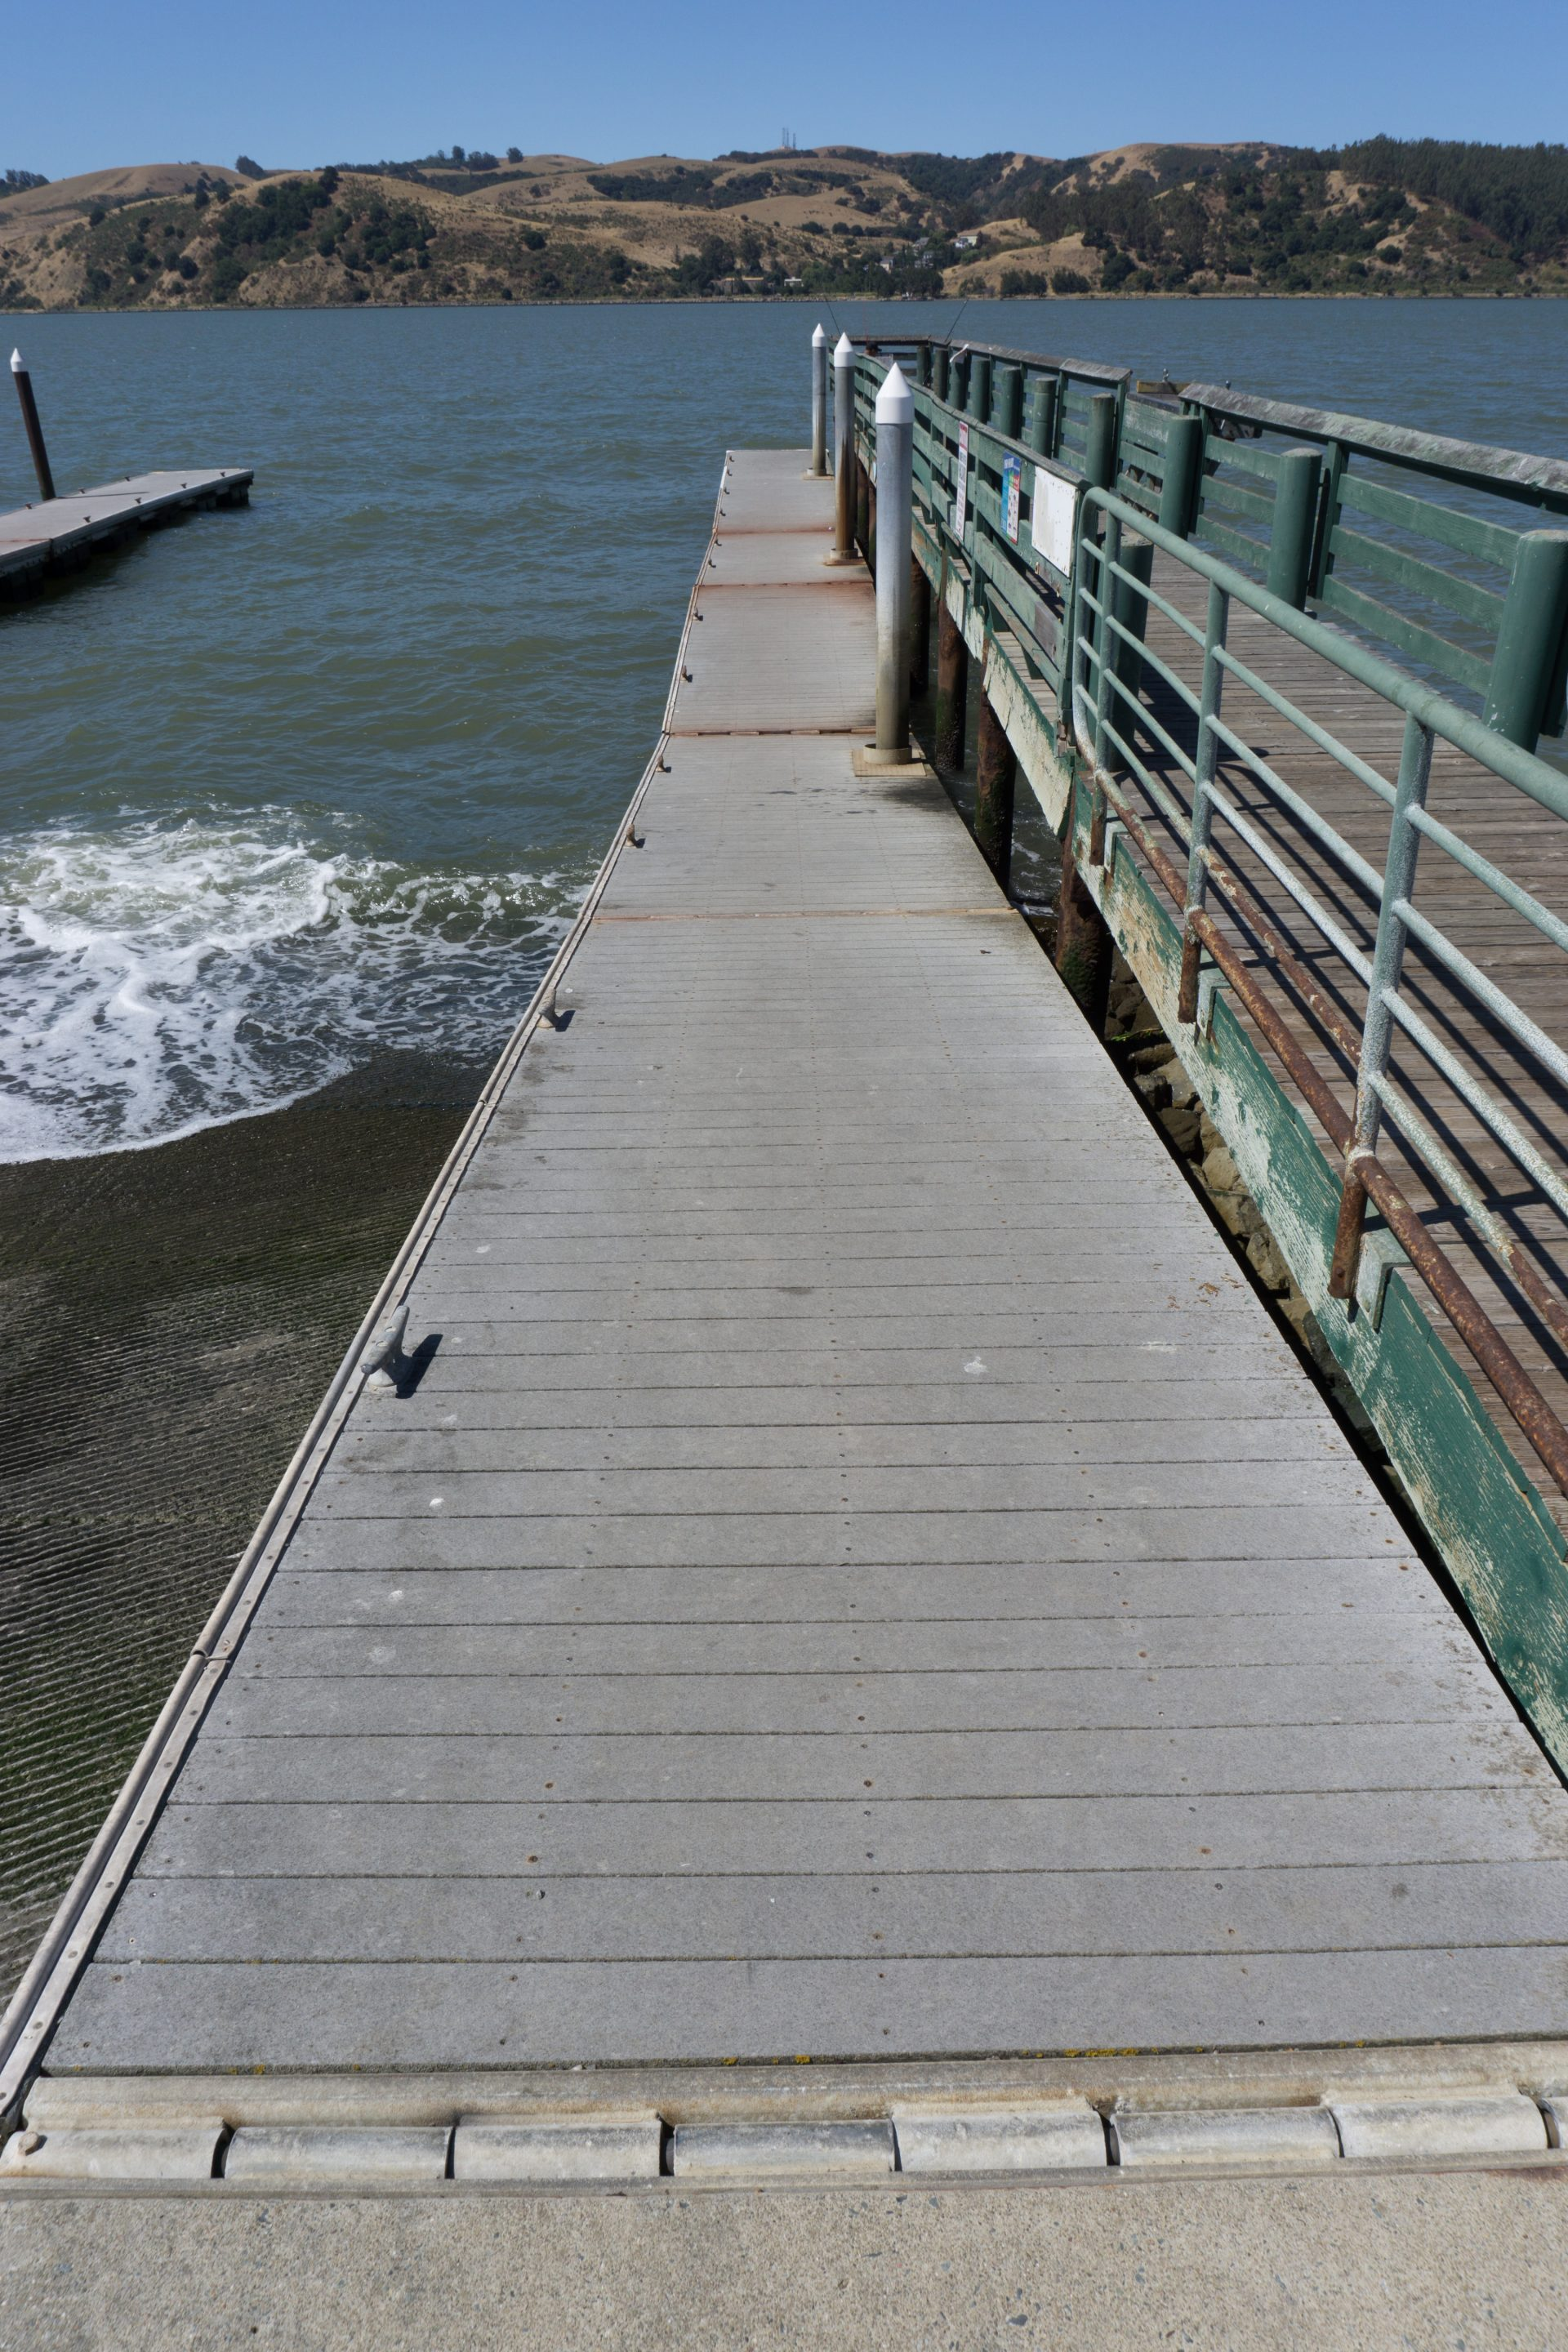 closeup of walkway next to boat ramp